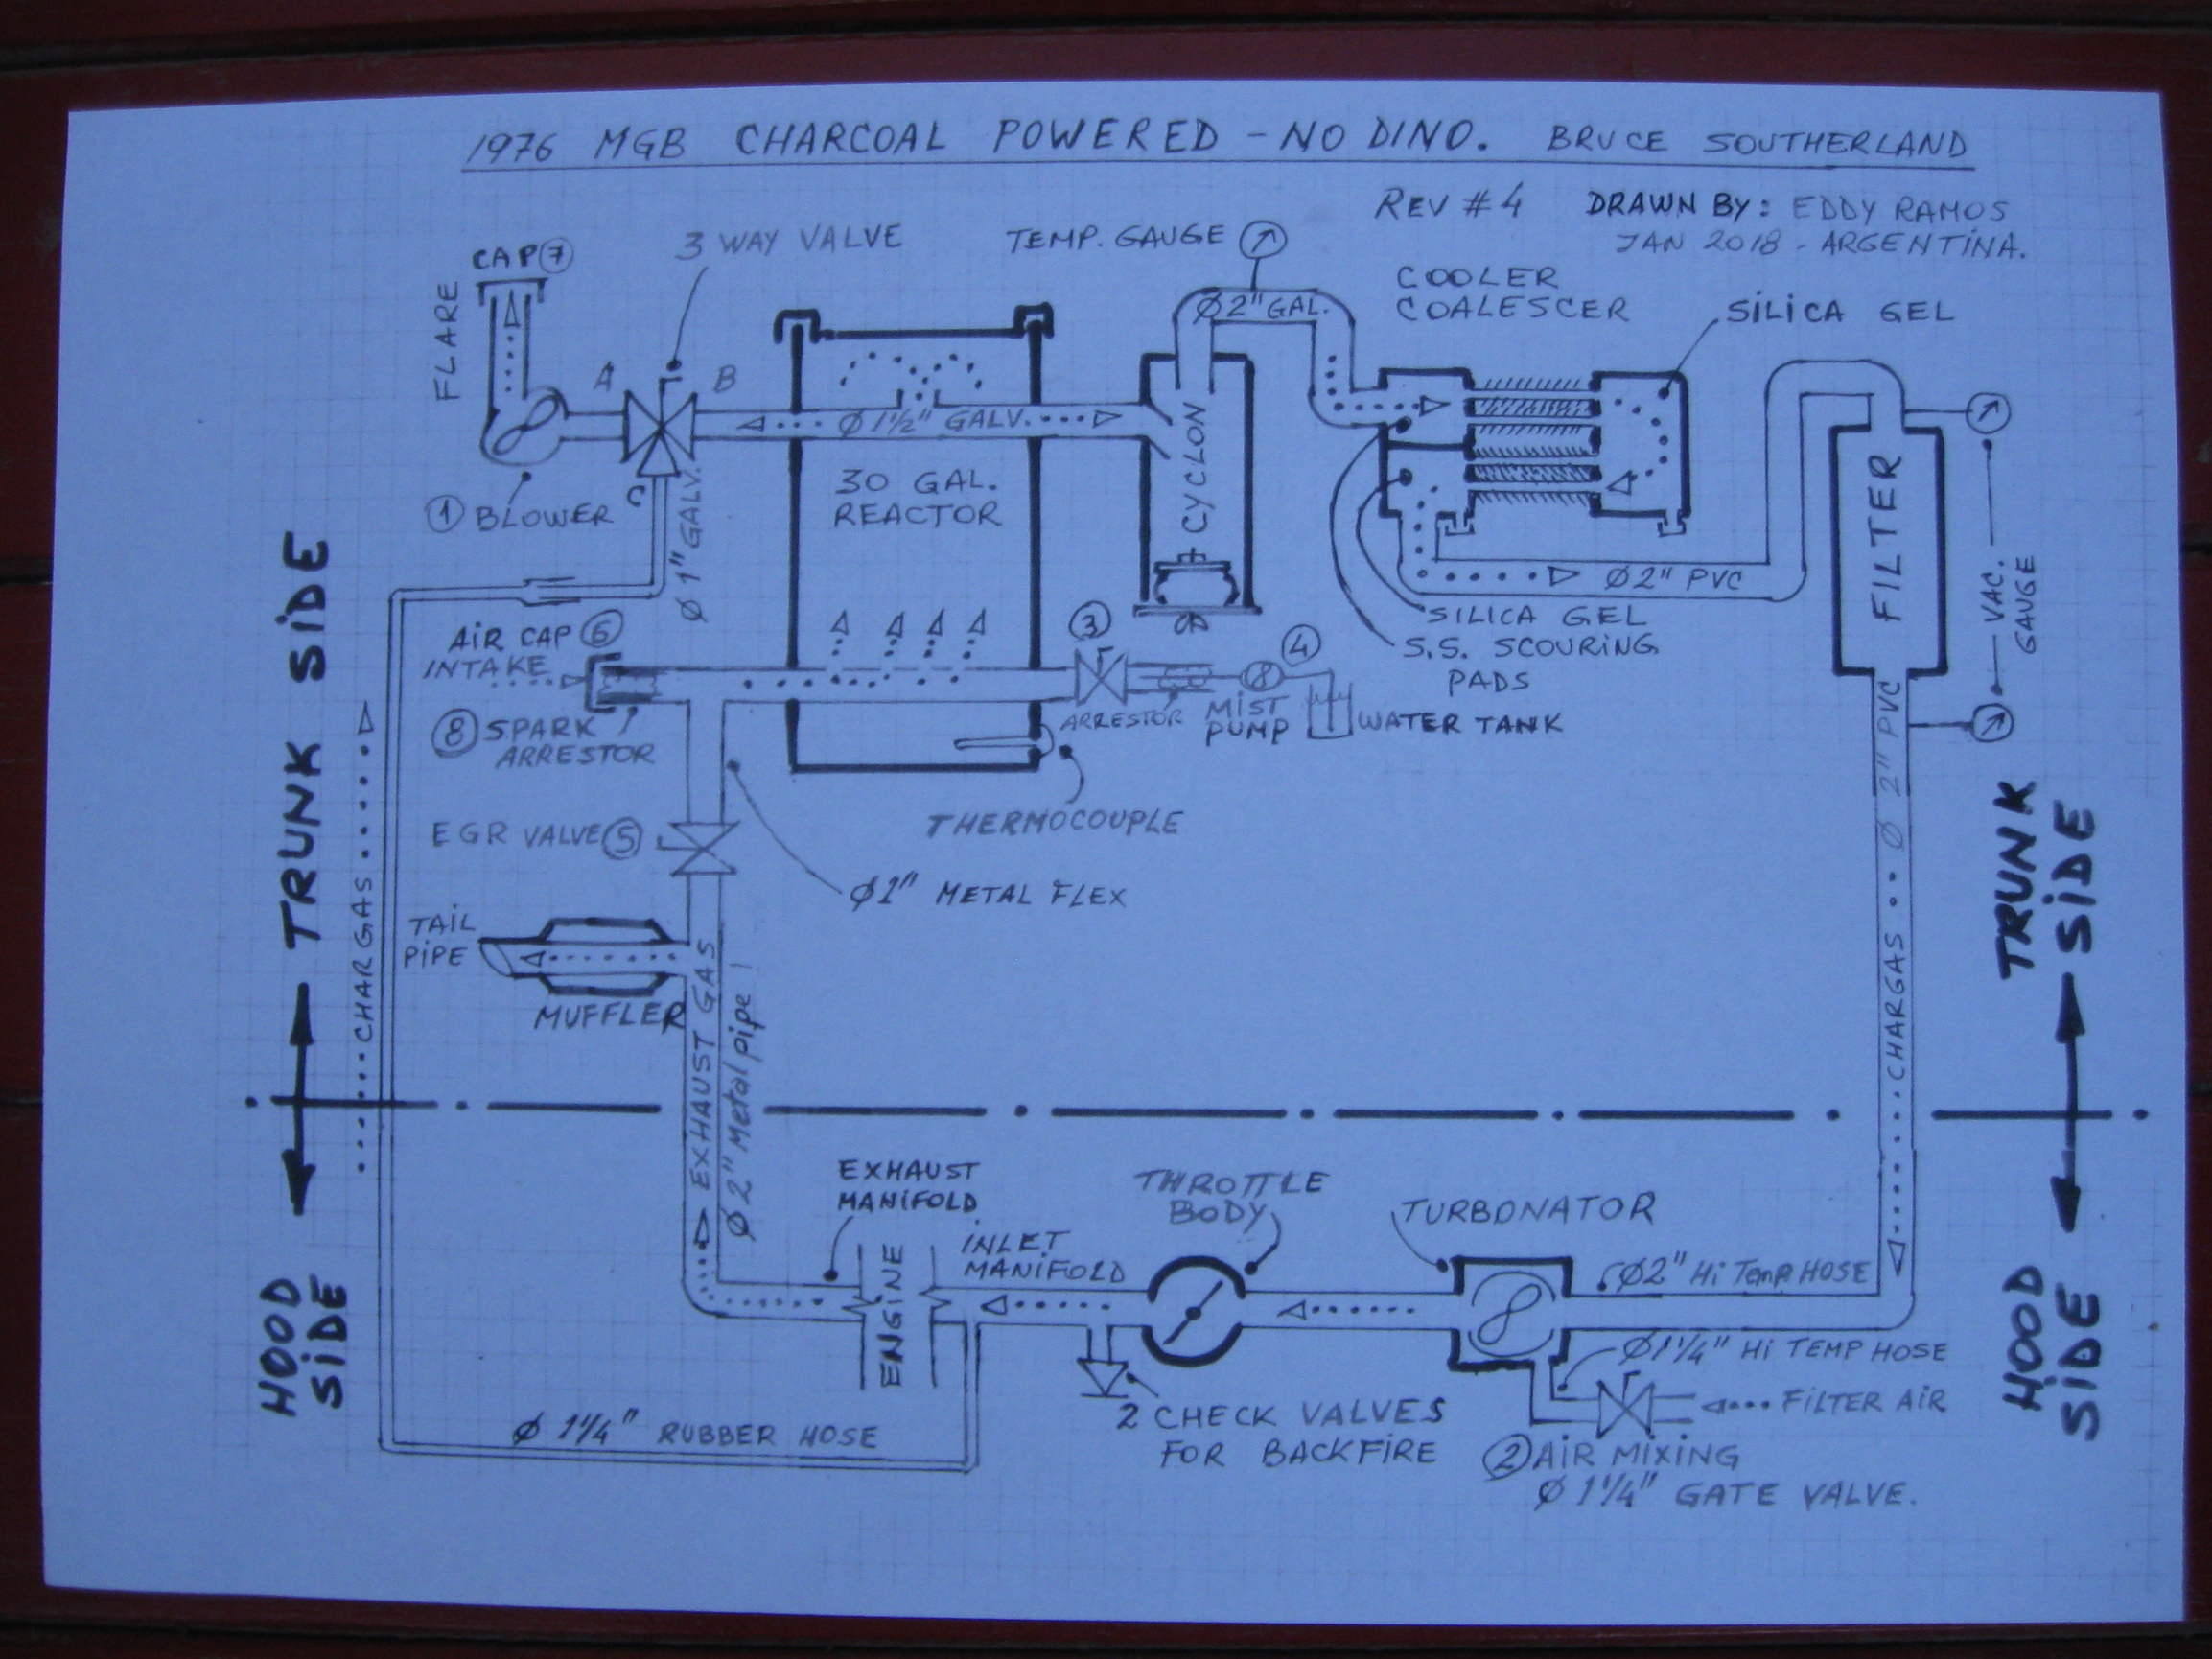 1976 Mgb Charcoal Powered No Dino New Build Gasification Schematic Drawing Rev 4 Img 21622307x1730 129 Mb